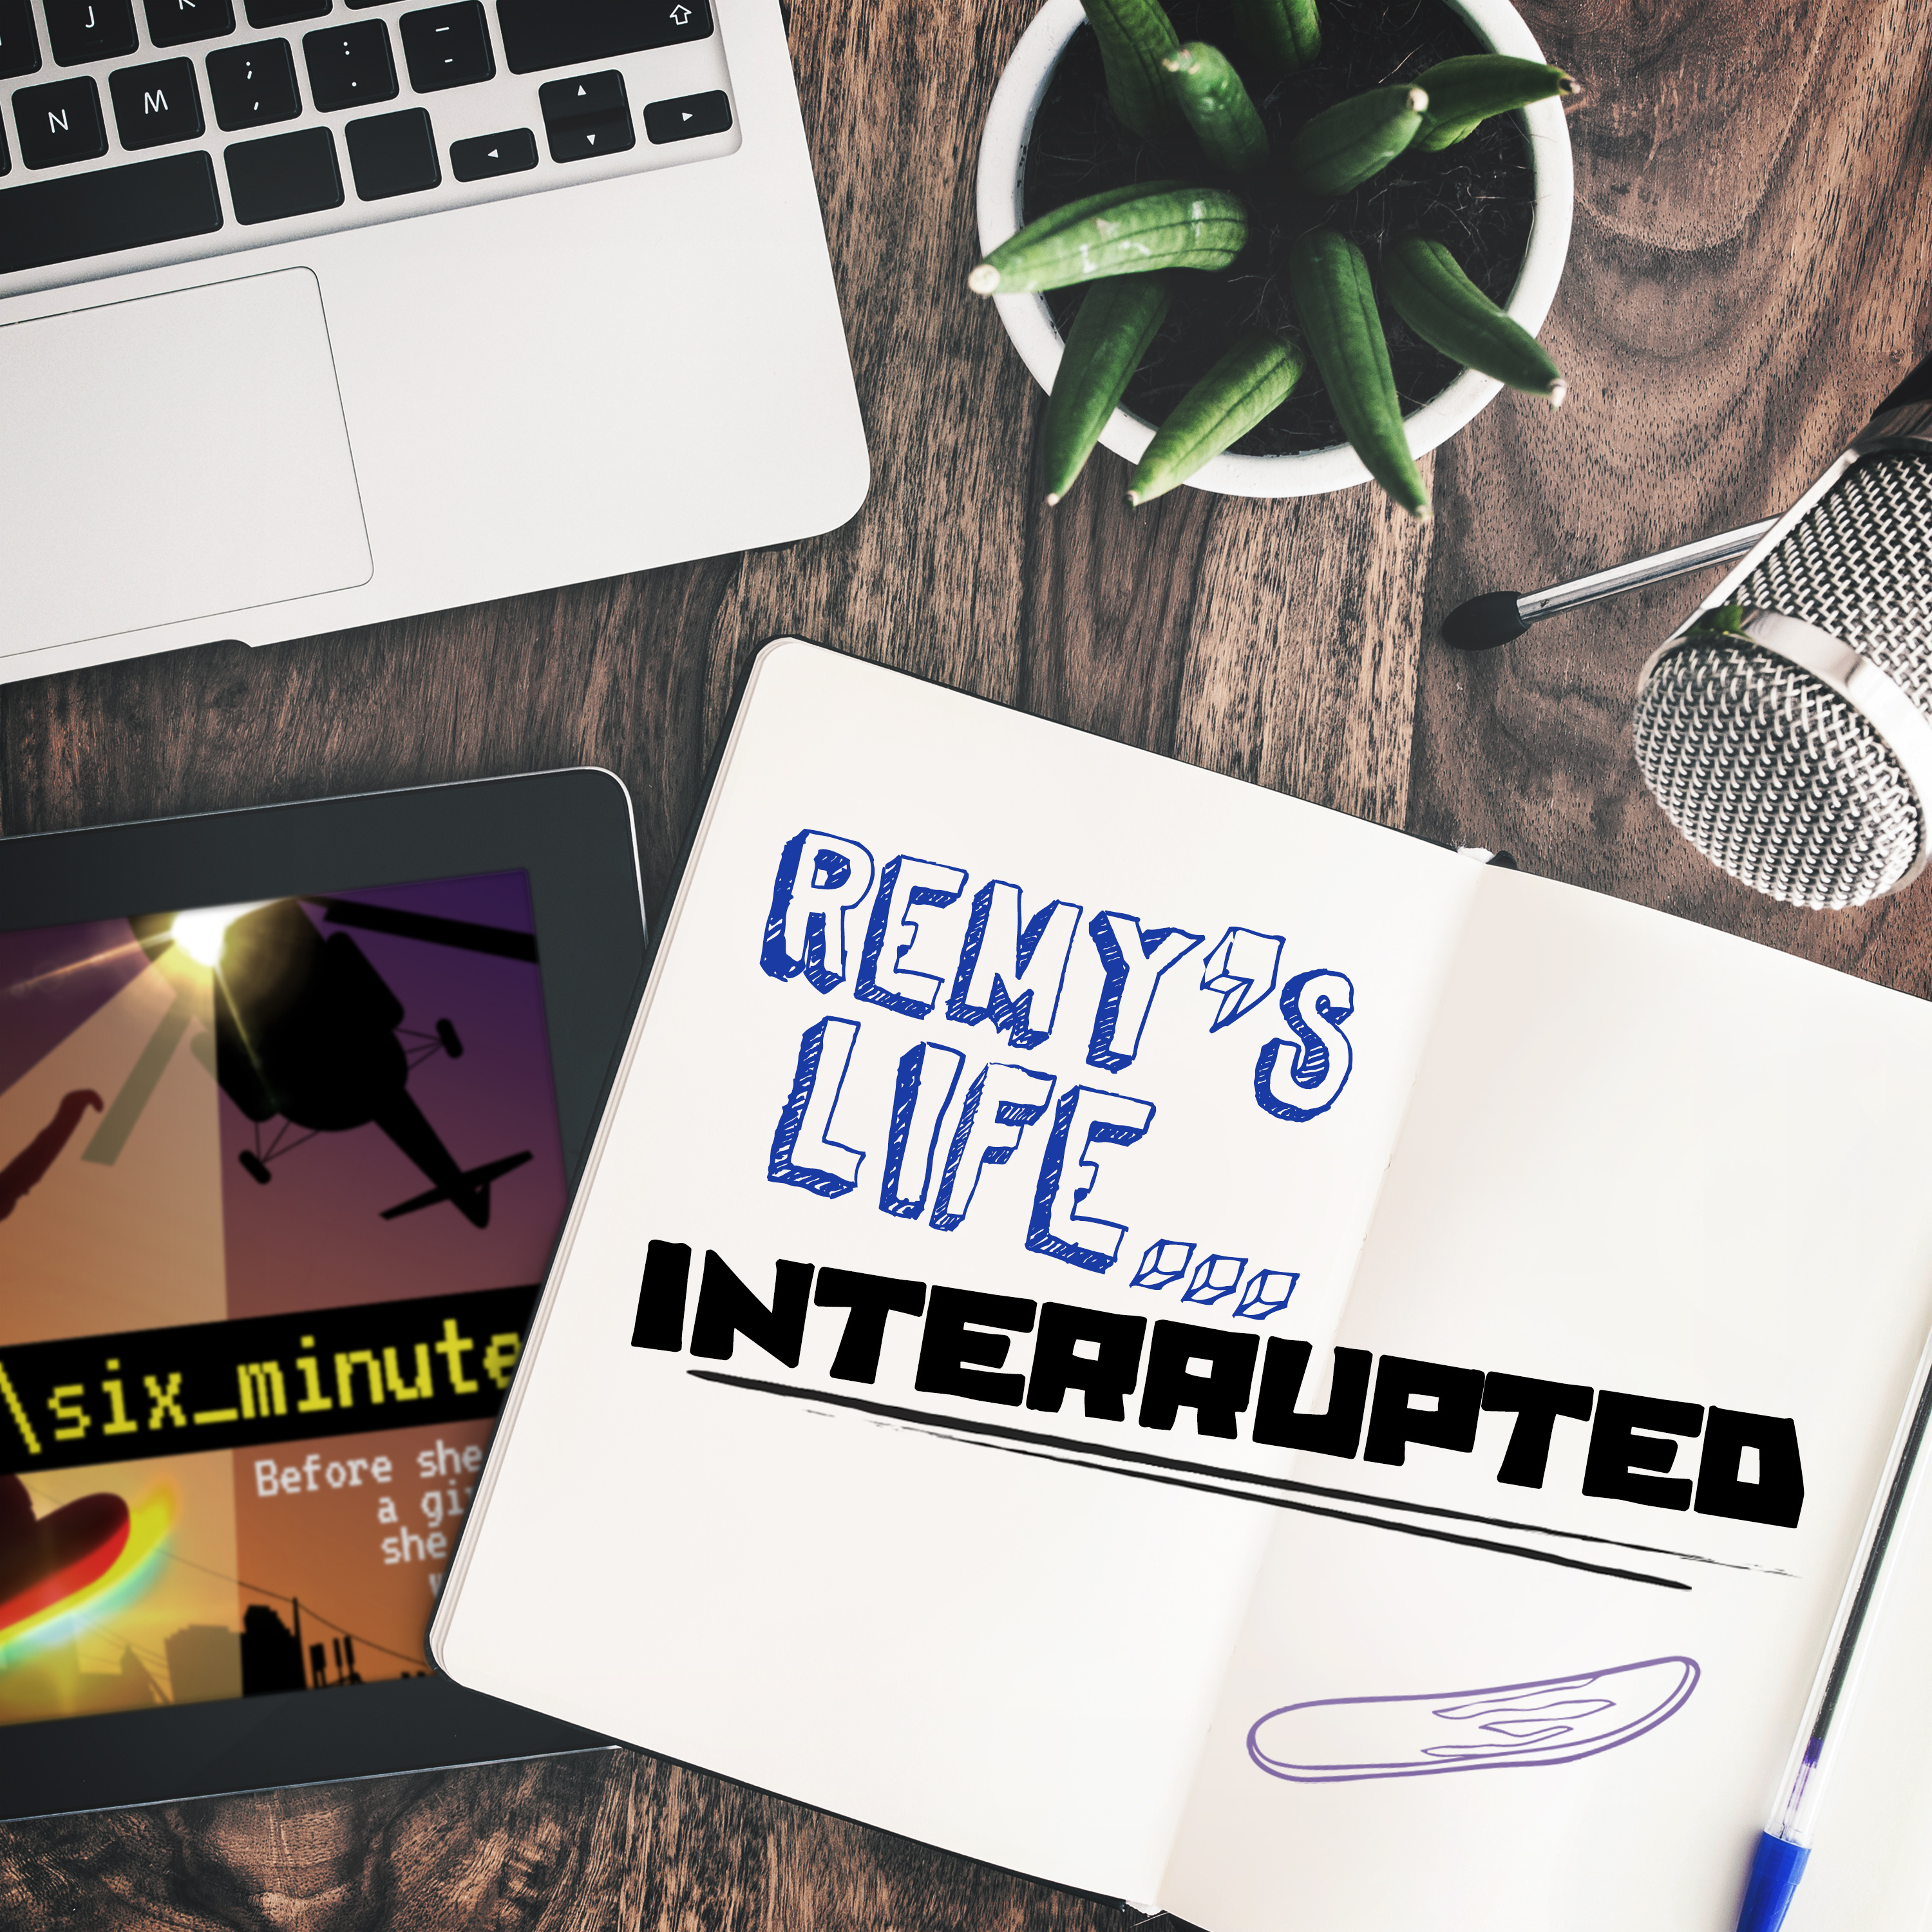 Remy's Life Interrupted: EP64